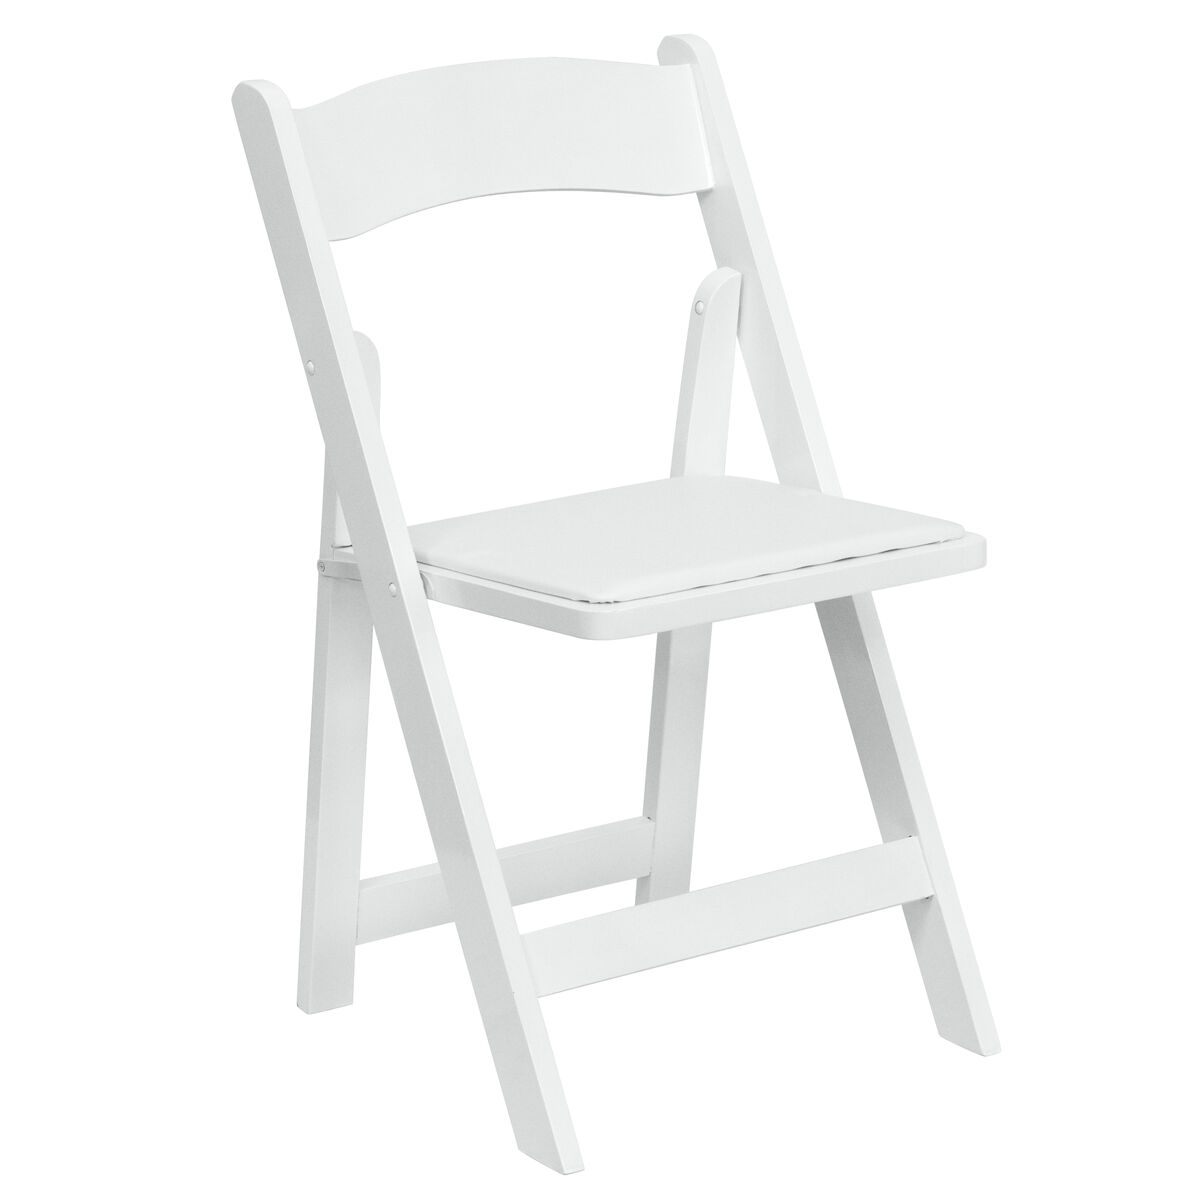 Brilliant Hercules Series White Wood Folding Chair With Vinyl Padded Seat Caraccident5 Cool Chair Designs And Ideas Caraccident5Info